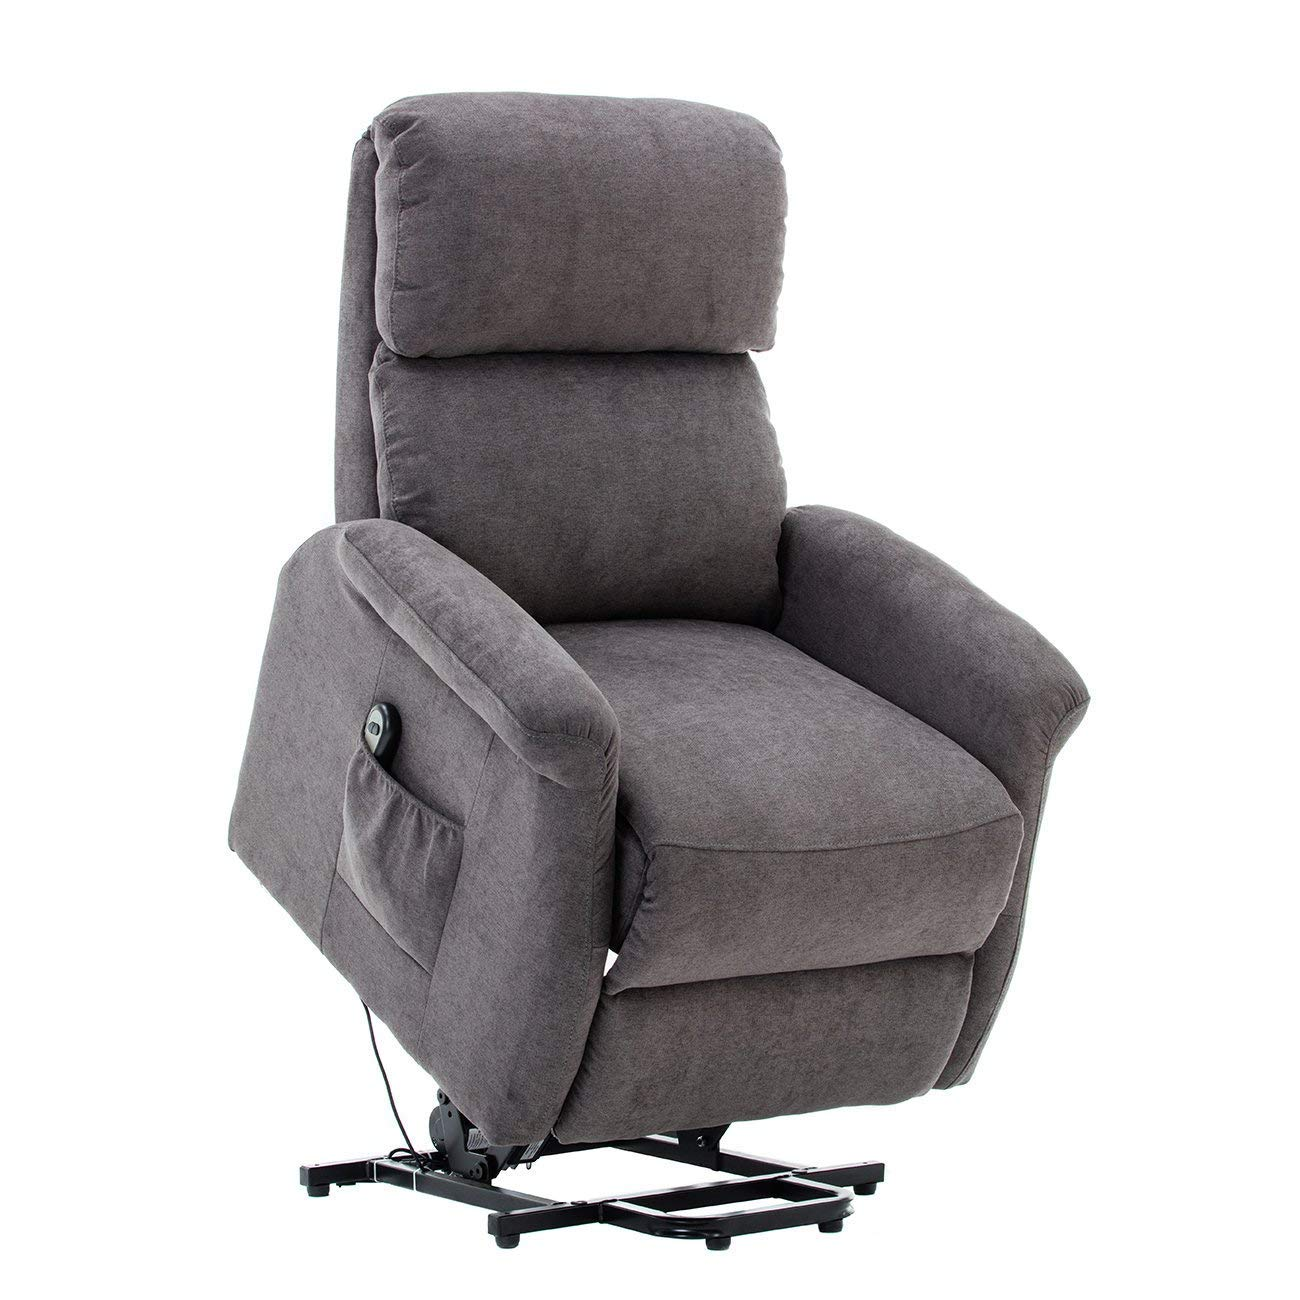 Big And Tall Recliners Best Recliner For Tall Man